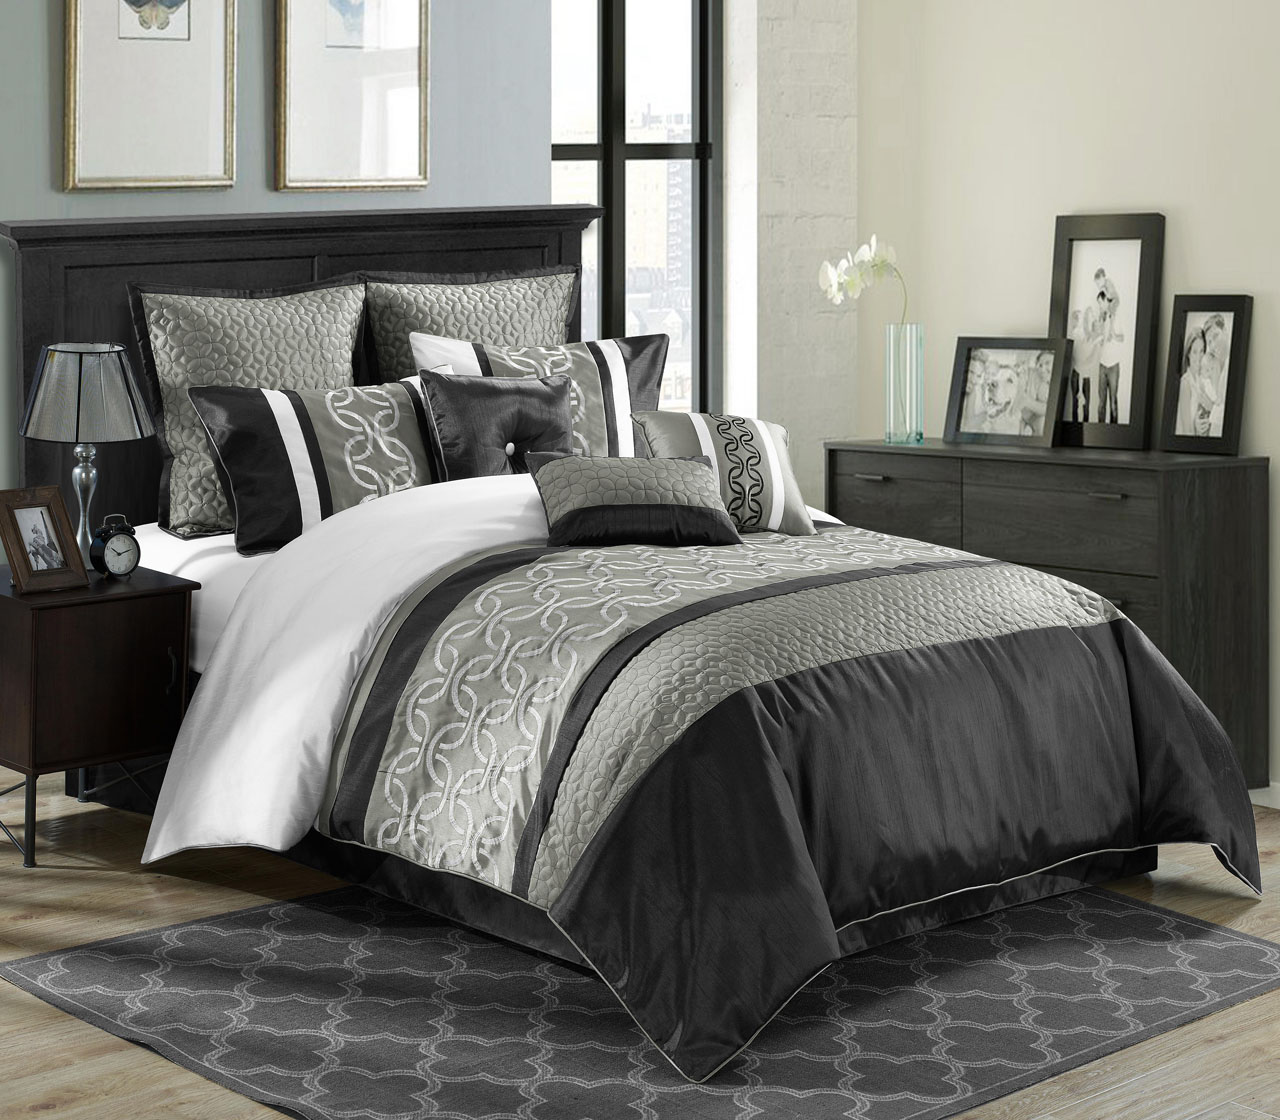 Amusing Bedroom with black and white comforter sets and laminate porcelain floor also curtain and sidetables